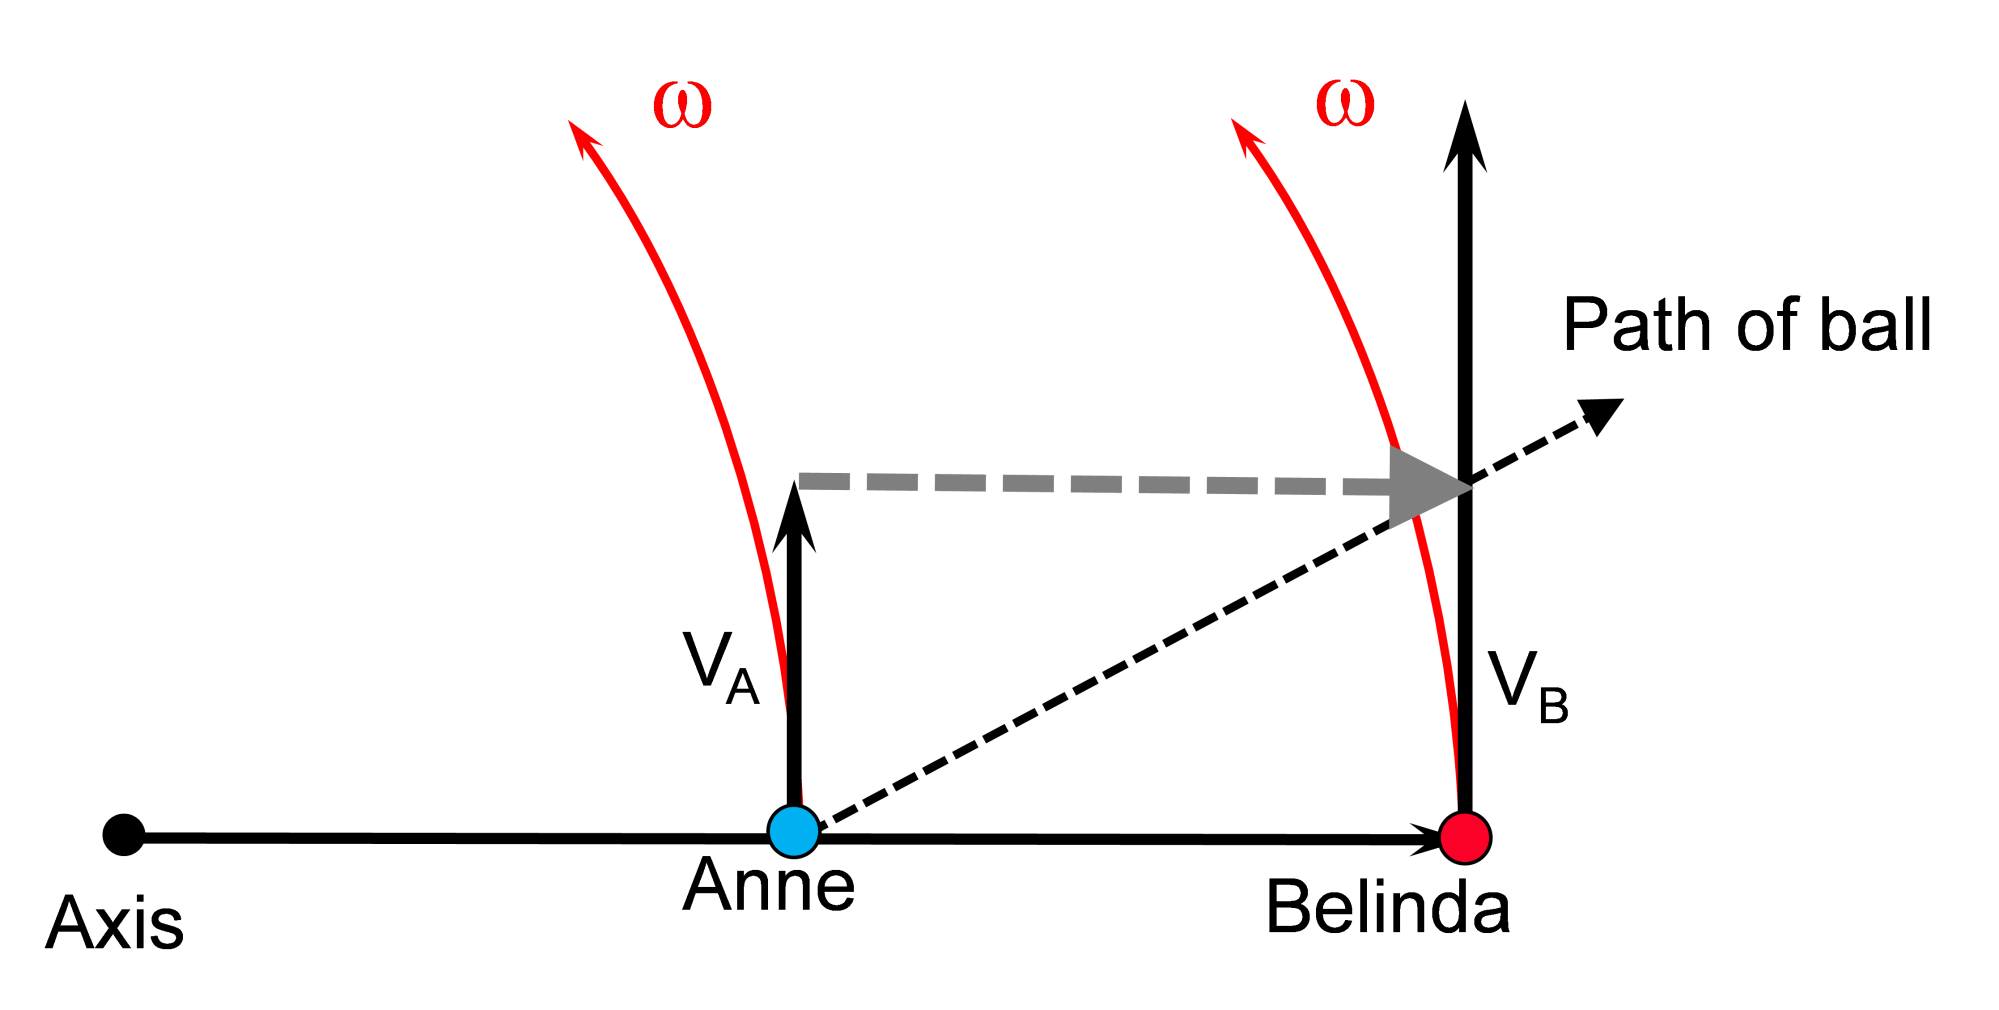 hight resolution of figure 2 belinda at the edge of the platform will have a peripheral speed of twice that of anne and thus the ball s peripheral speed needs to be